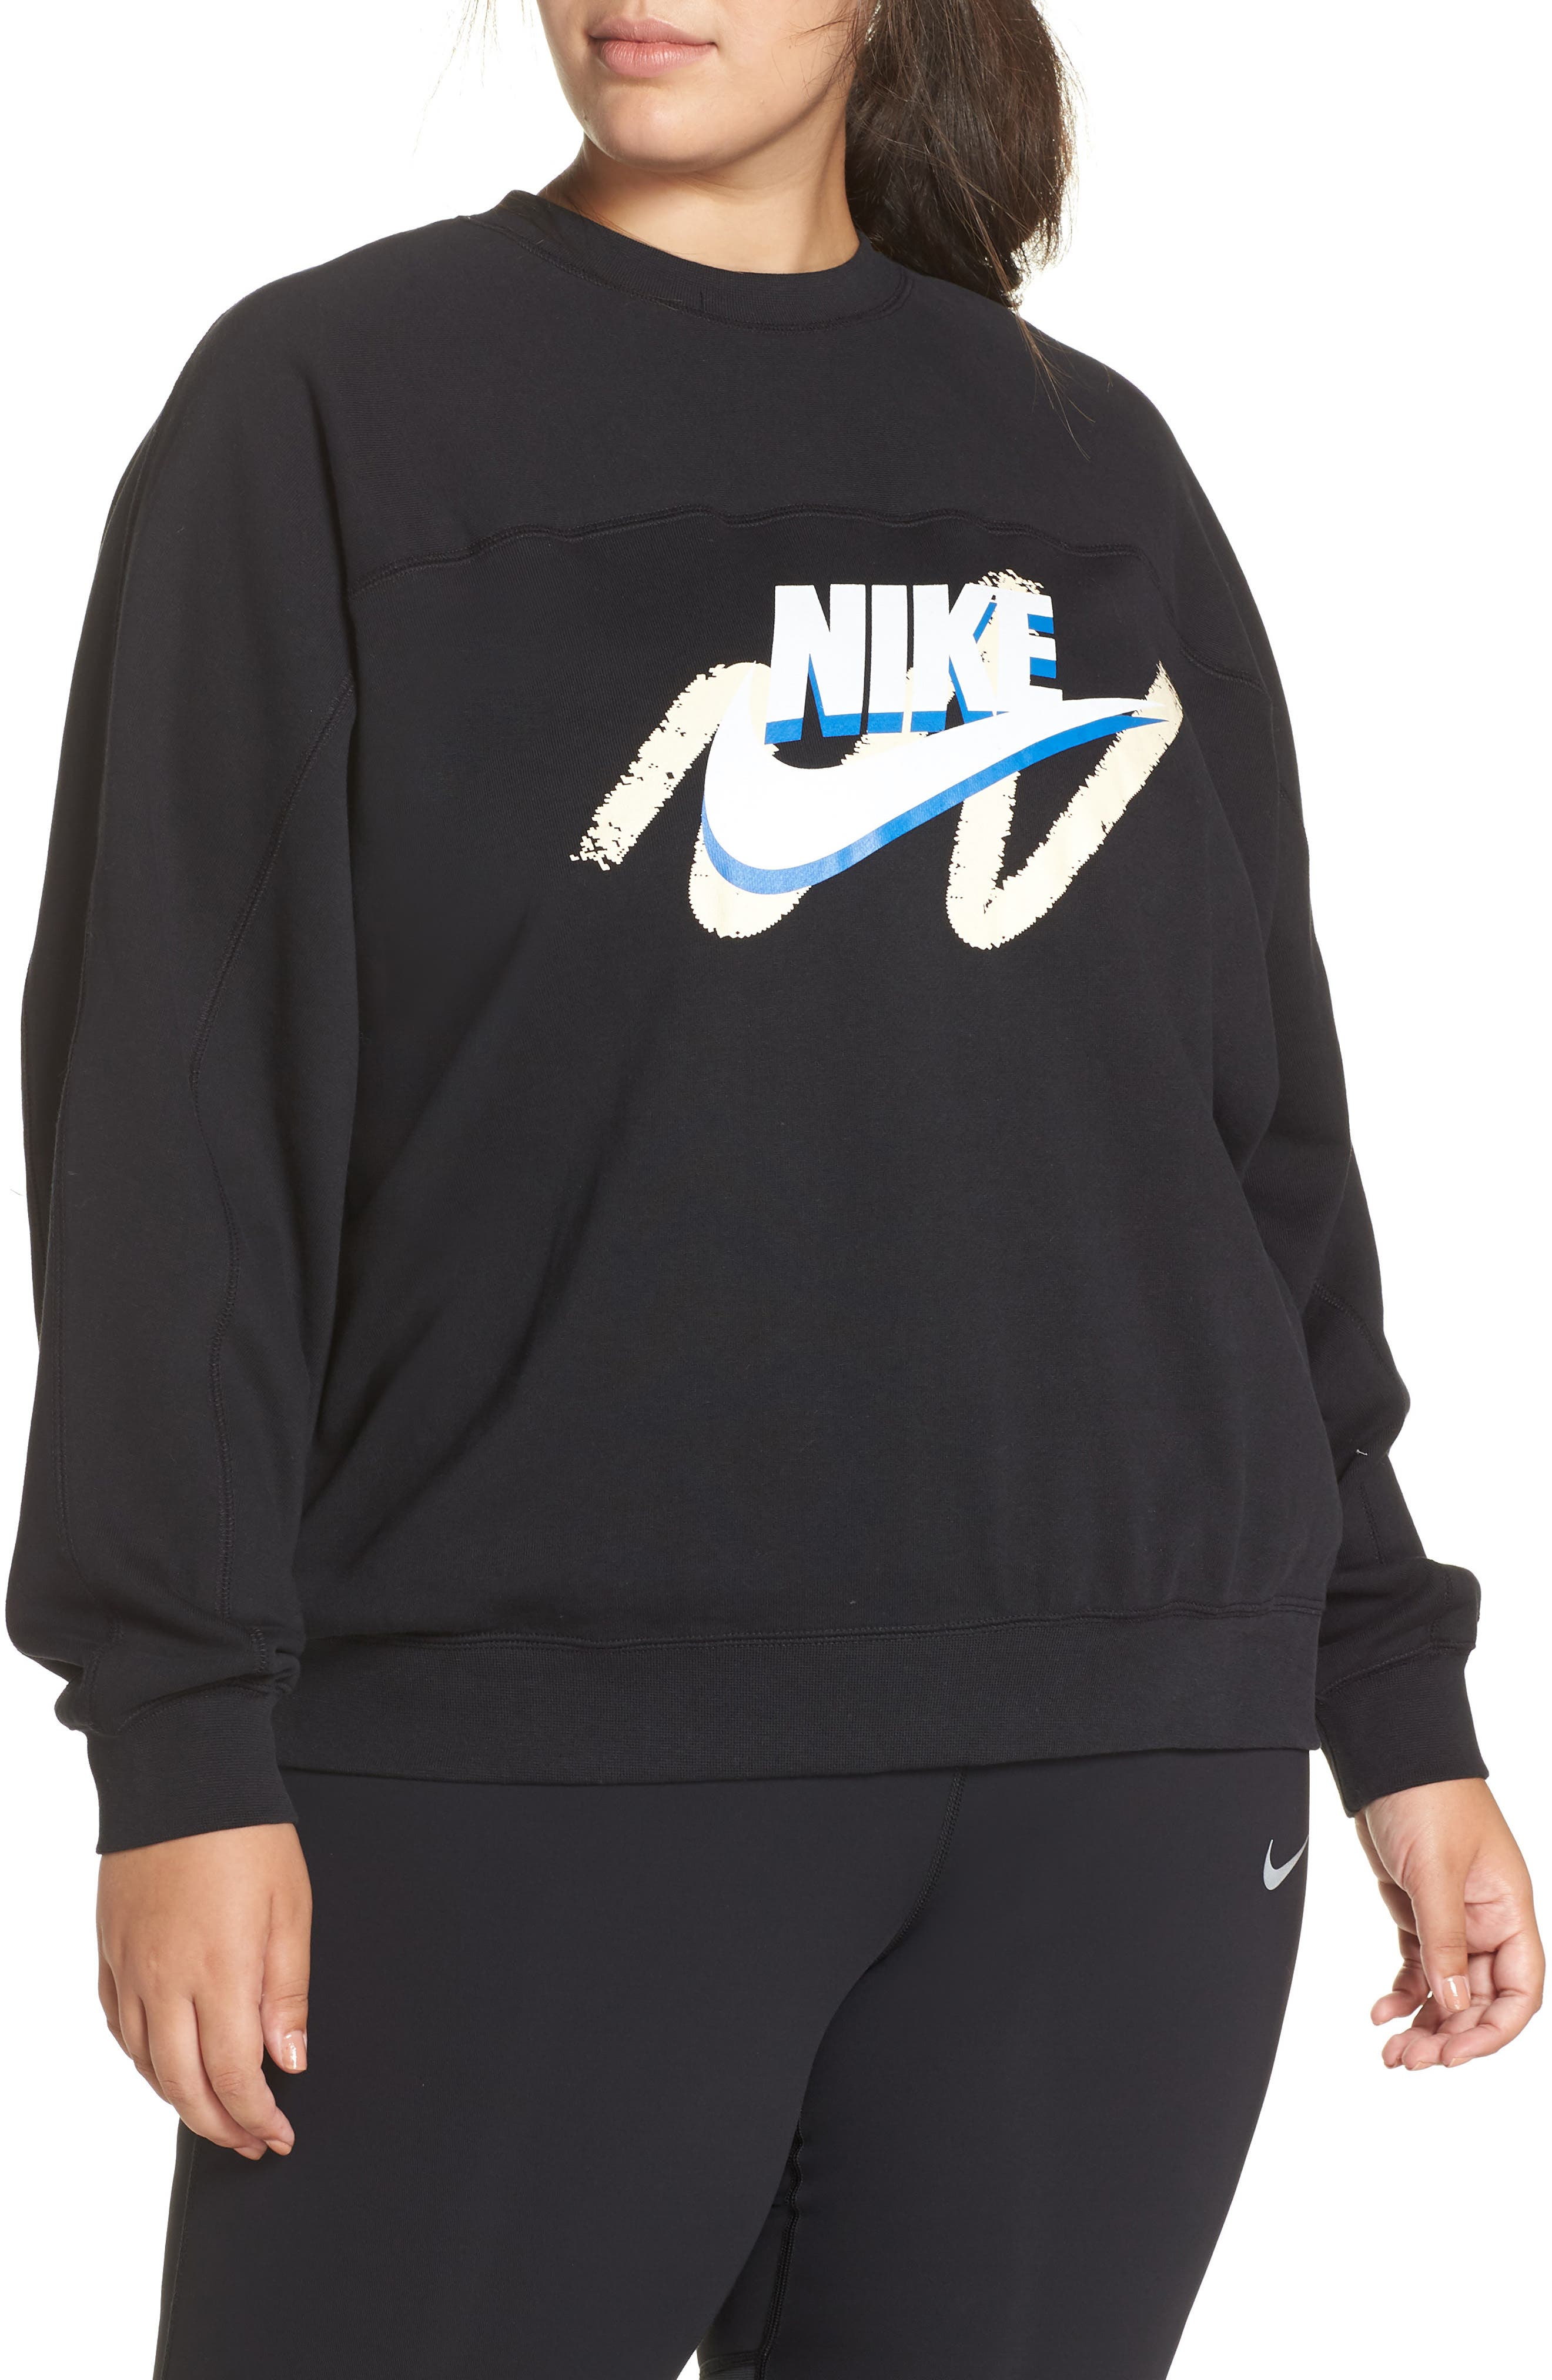 Sportswear Archive Sweatshirt,                             Main thumbnail 1, color,                             010